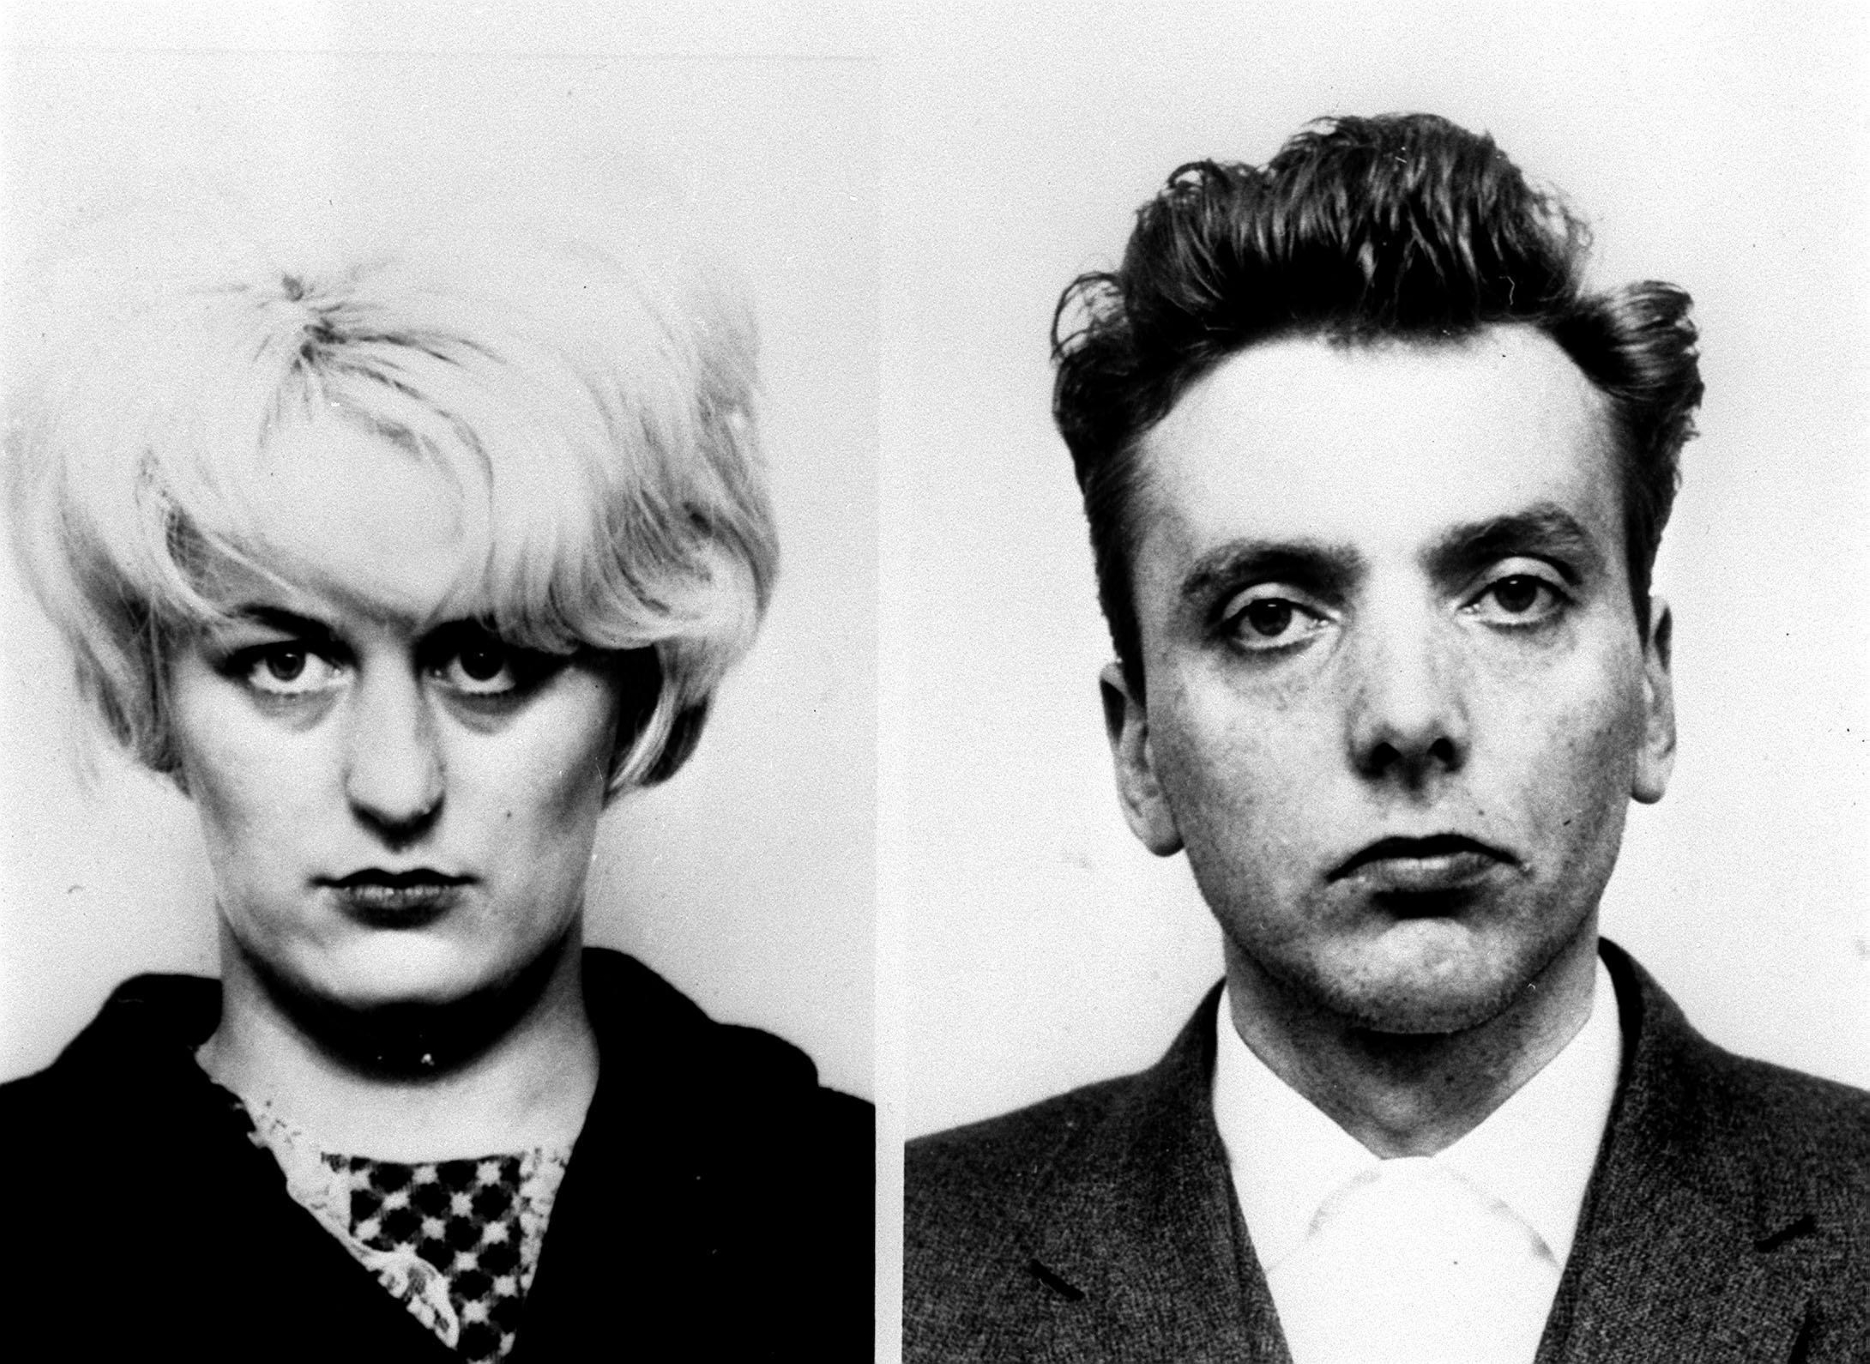 Undated handout file photo issued by Greater Manchester Police of Moors Murderers Myra Hindley and Ian Brady, as Margaret Thatcher was horrified at the prospect that Moors murderers Ian Brady and Myra Hindley could ever be released, newly released government papers reveal.